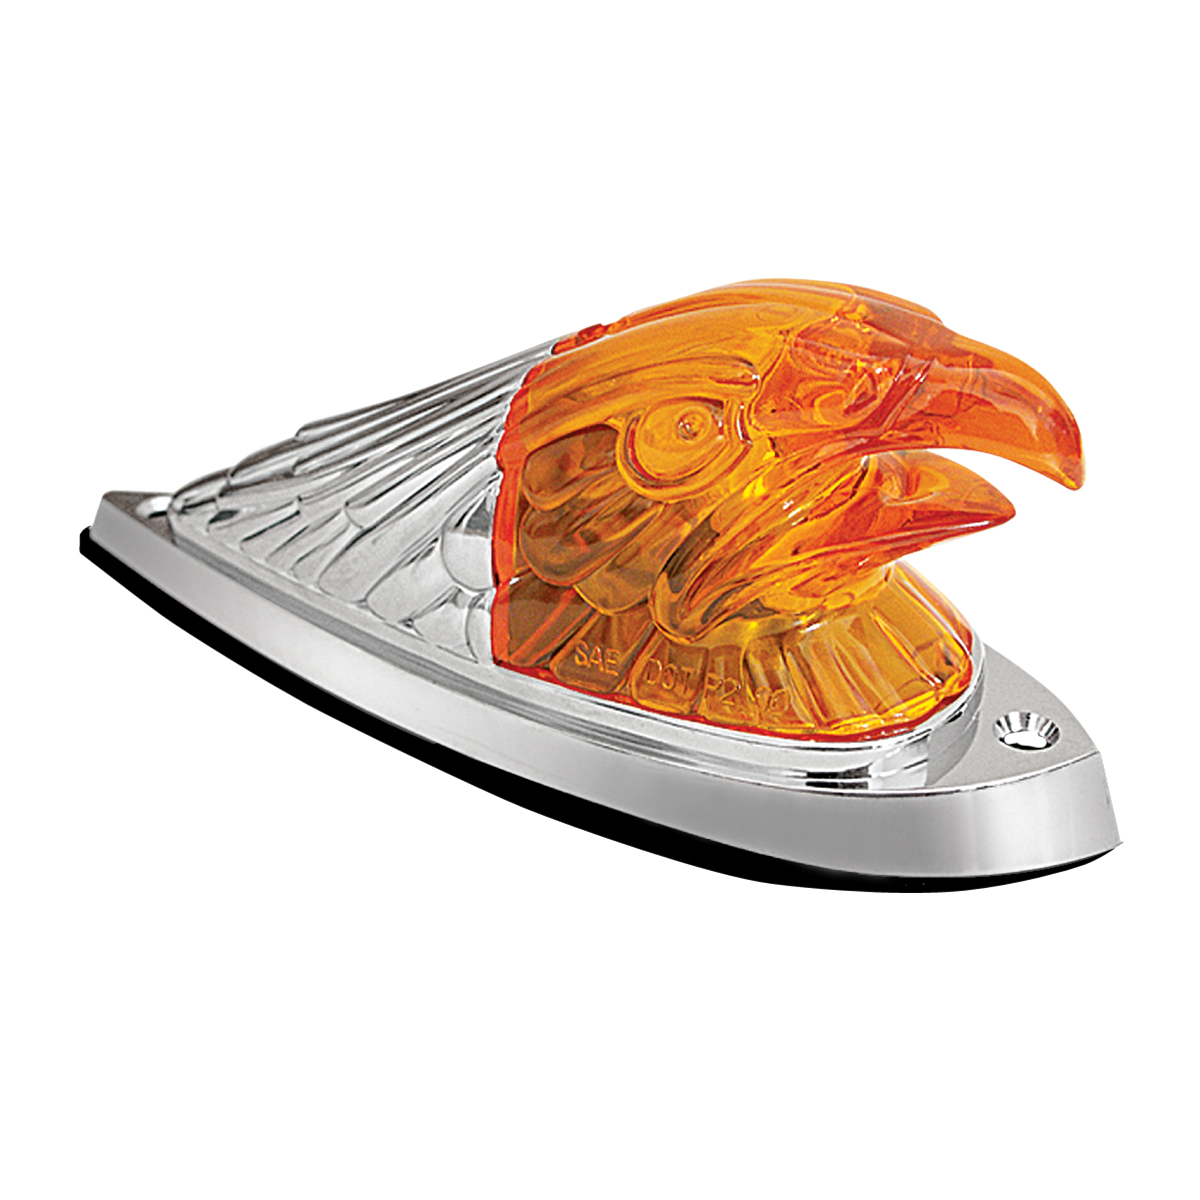 #81220 Medium Eagle Head Cab Light